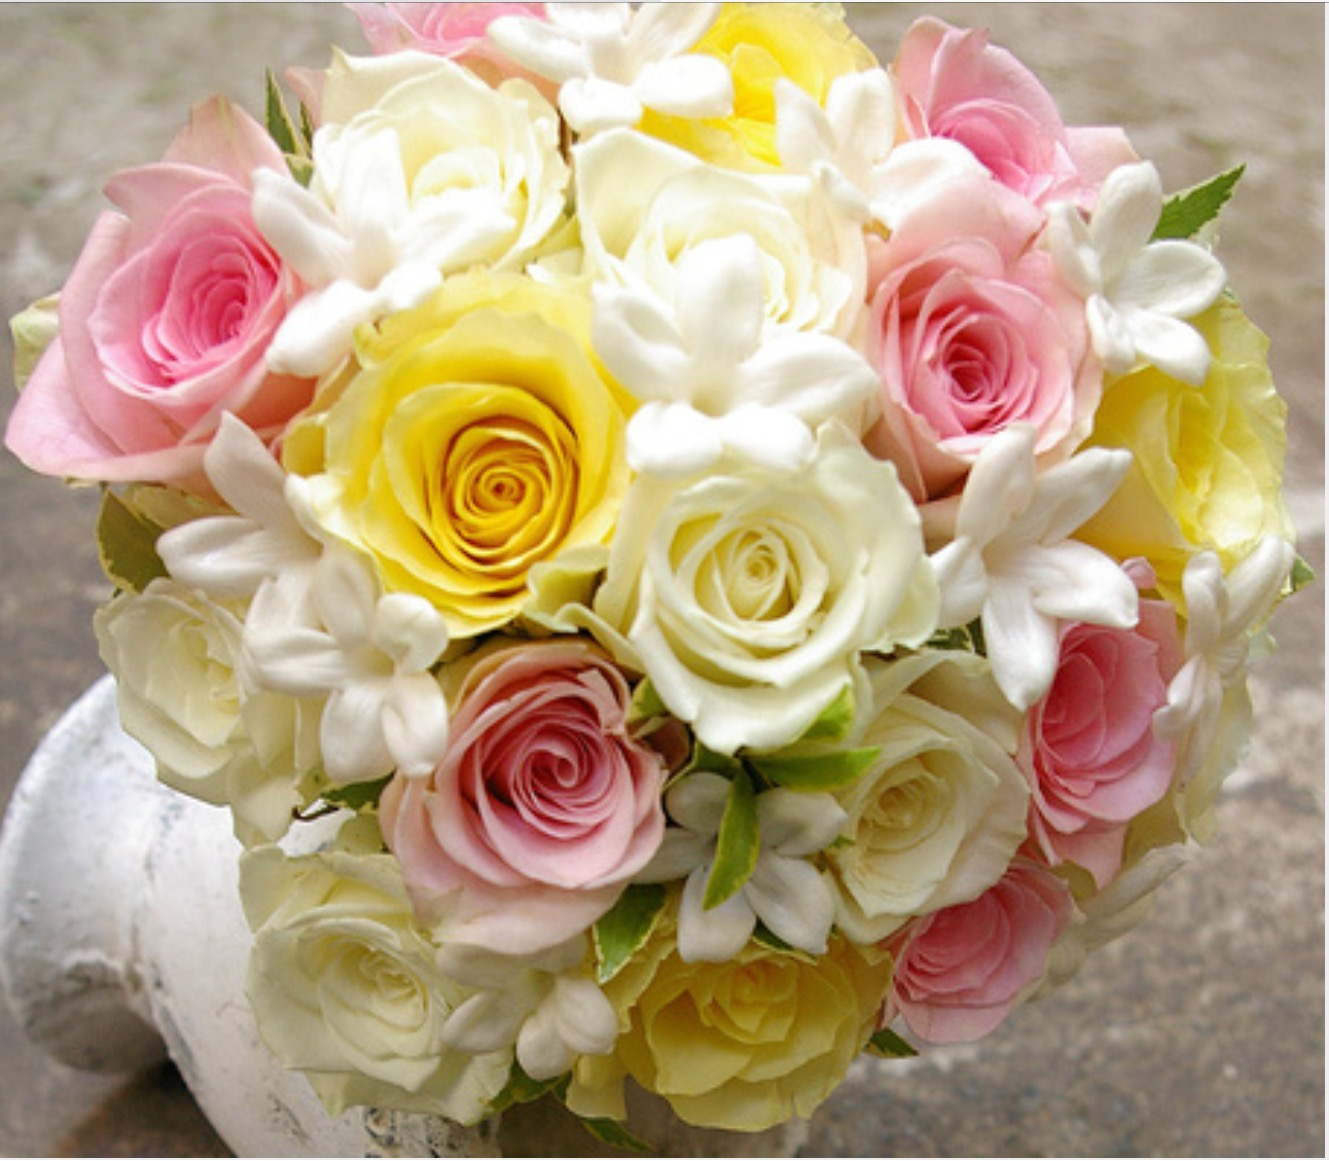 Wedding Flowers Yellow Roses: Wedding Posy Light Yellow Roses Pink And White Stephanotis